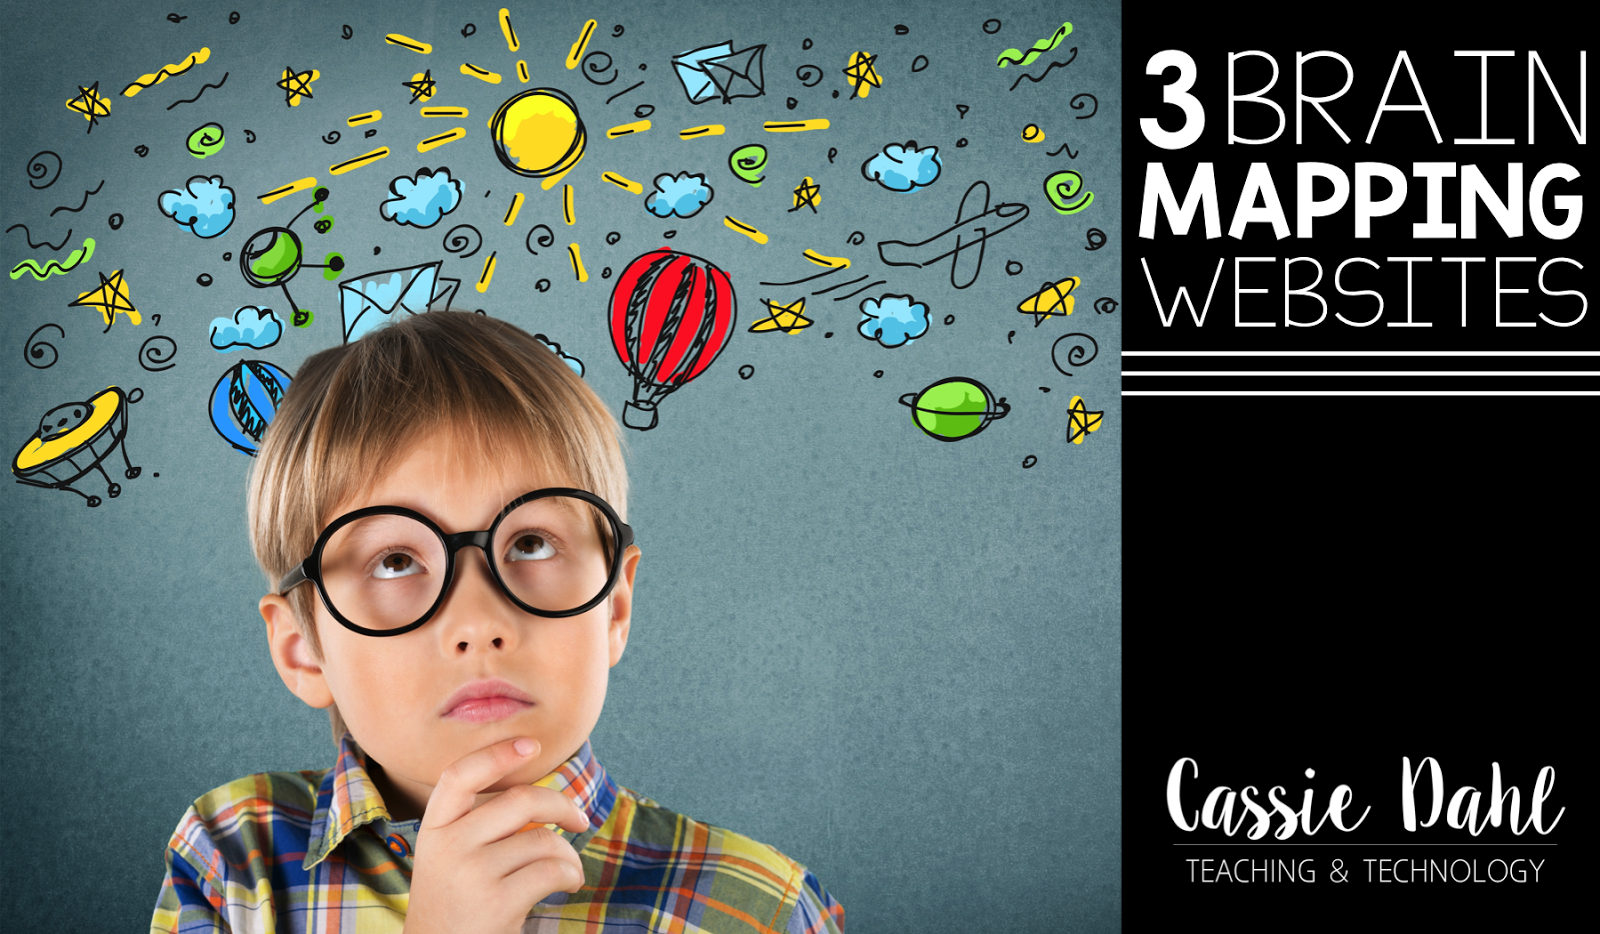 These three easy to use websites are perfect for engaging students and helping them get their thoughts organized!